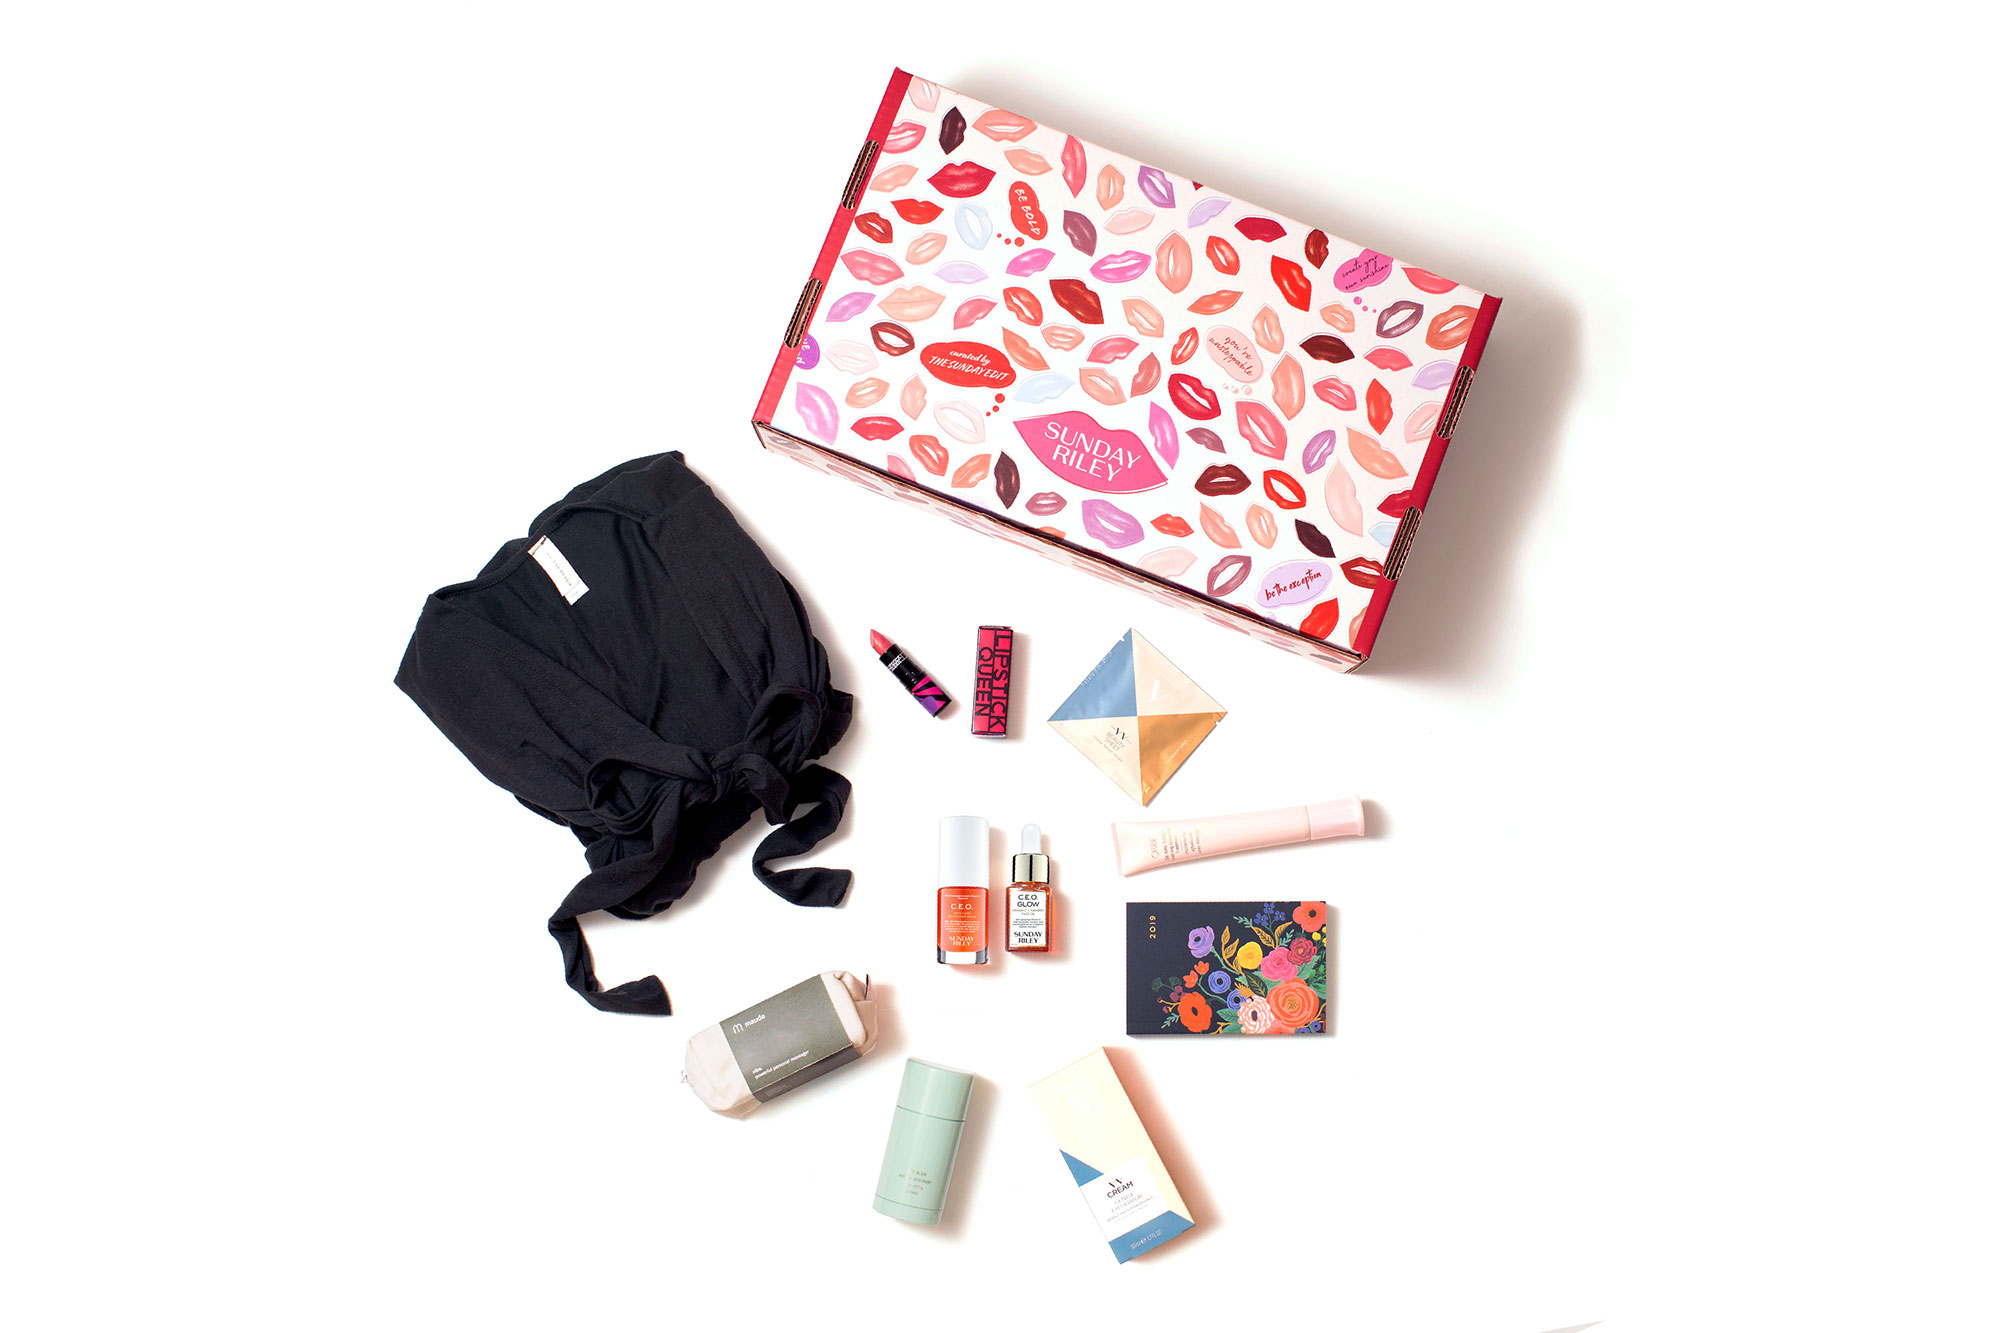 Valentine's Day Gift Guide 2019: Beauty and Fashion Ideas for the Lady in Your Life - There is so much to love about the skincare brand's curated beauty box that includes a full-size bottle of the soon-to-be released C.E.O Glow Vitamin C + Turmeric Face Oil, in addition to a Lipstick Queen lippie, Rifle Paper Co. agenda book, Oribe scalp treatment and more. $95, sundayriley.com beginning February 7